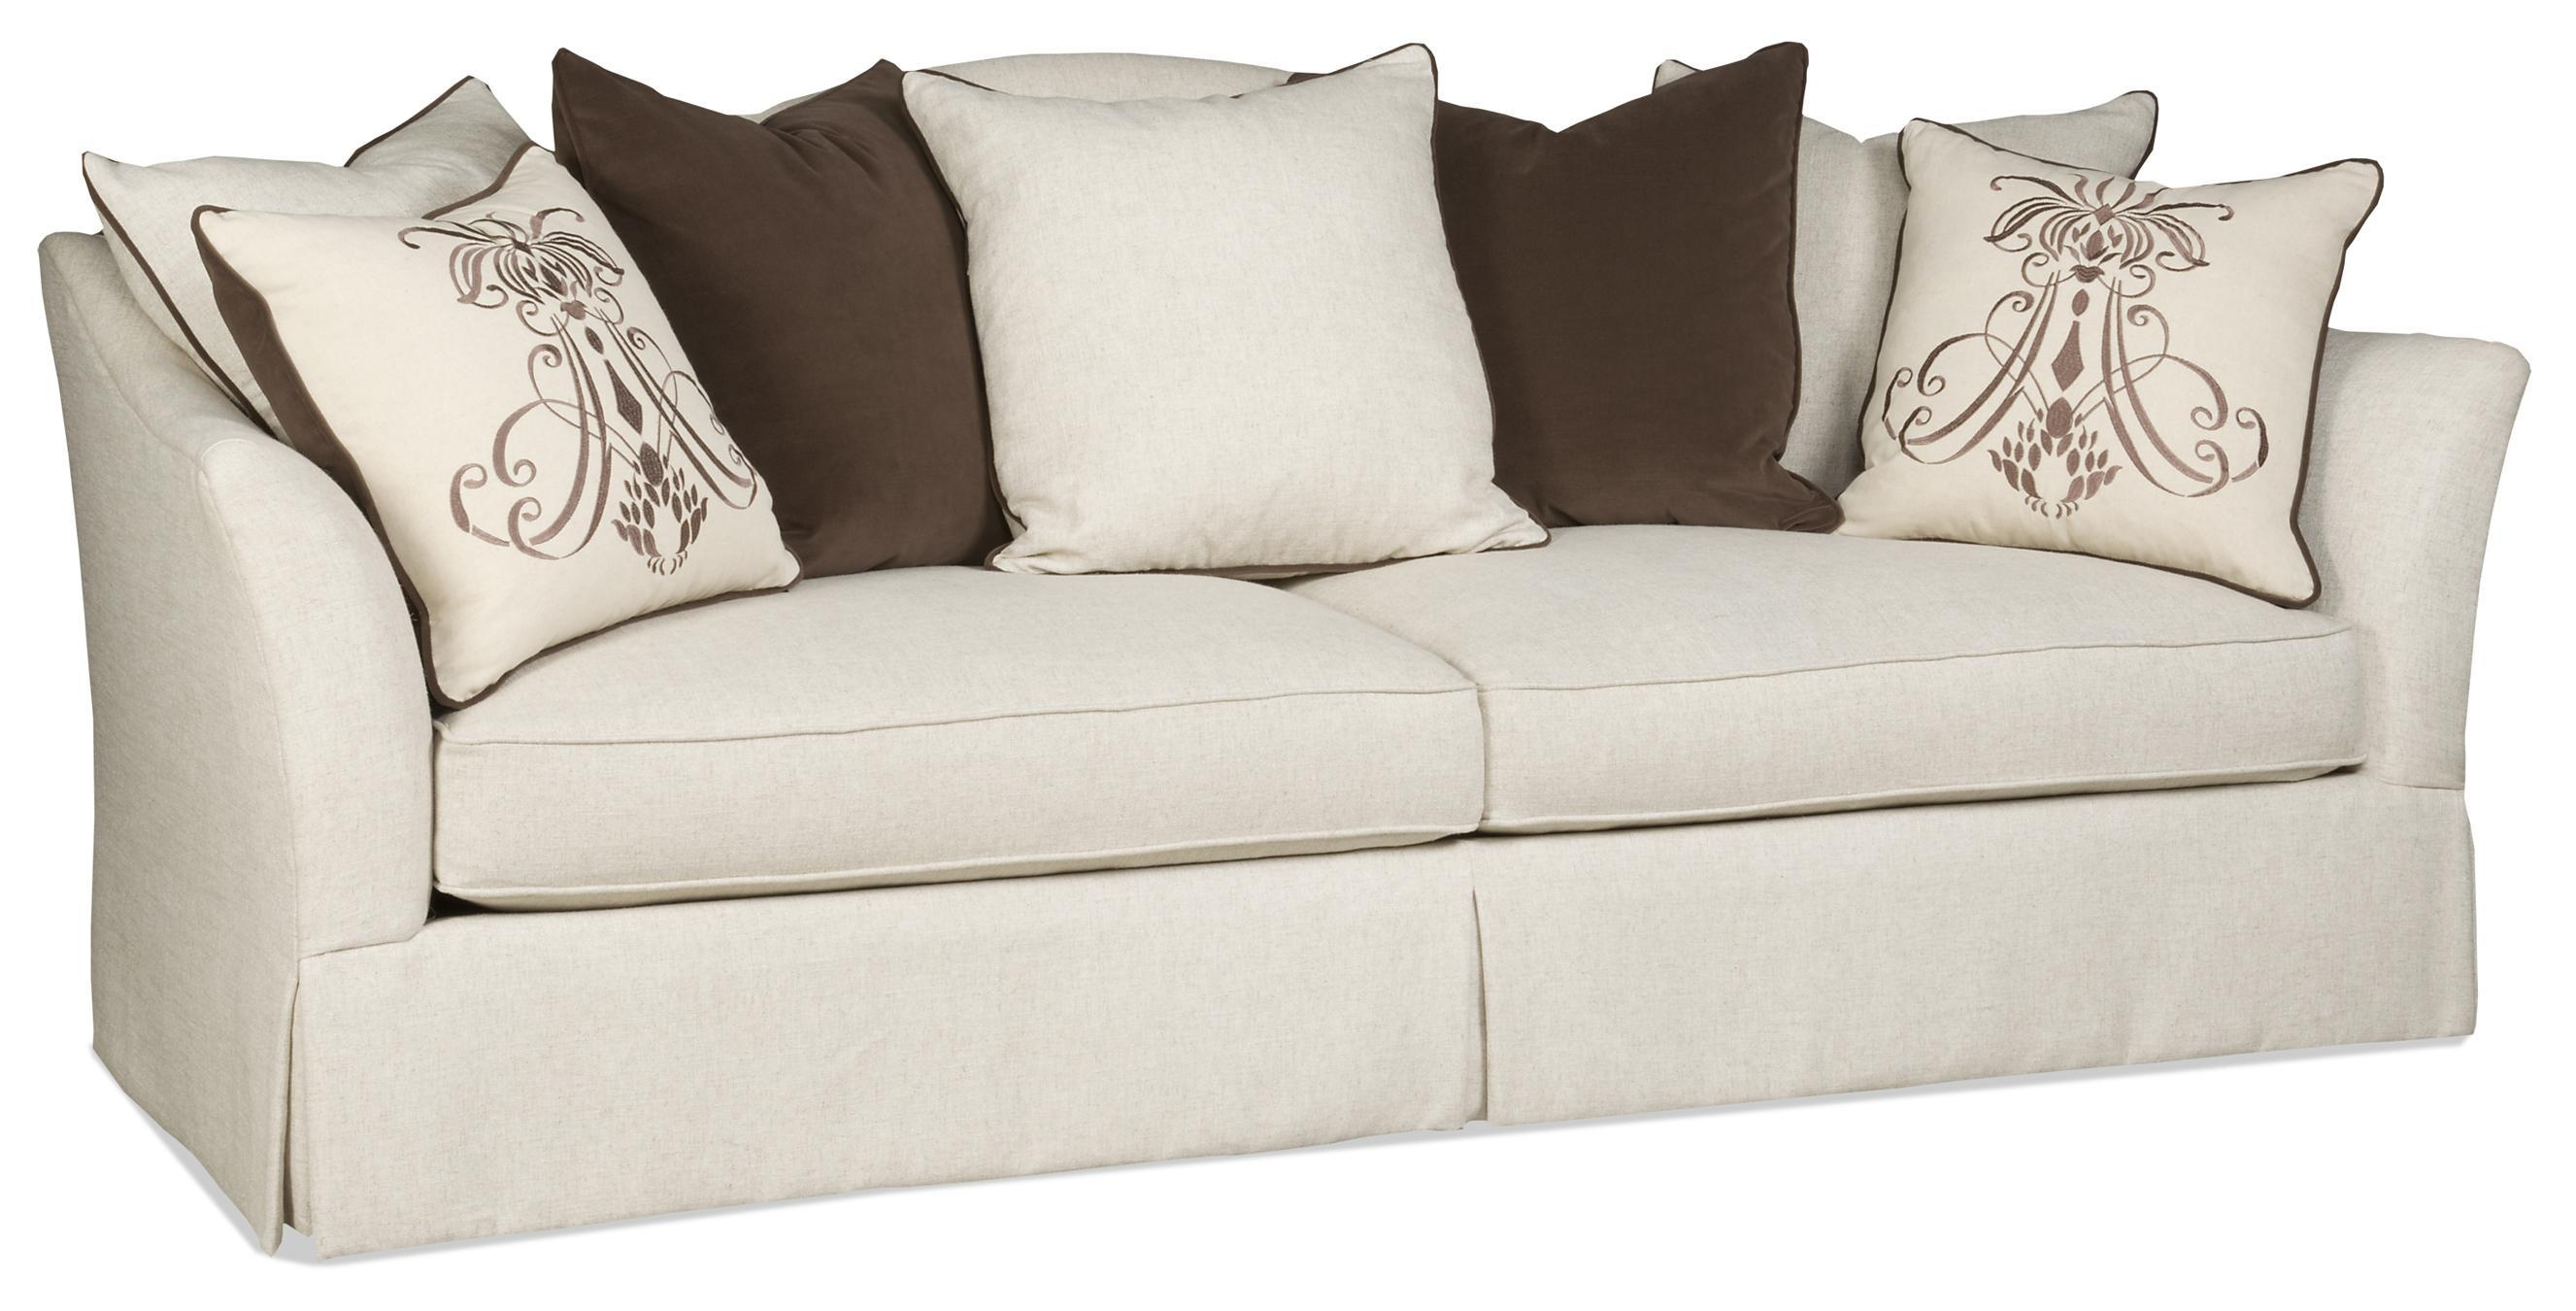 Transitional Scatterback Sofa With Flair Tapered Arms And Skirt Regarding Sam Moore Sofas (View 20 of 20)